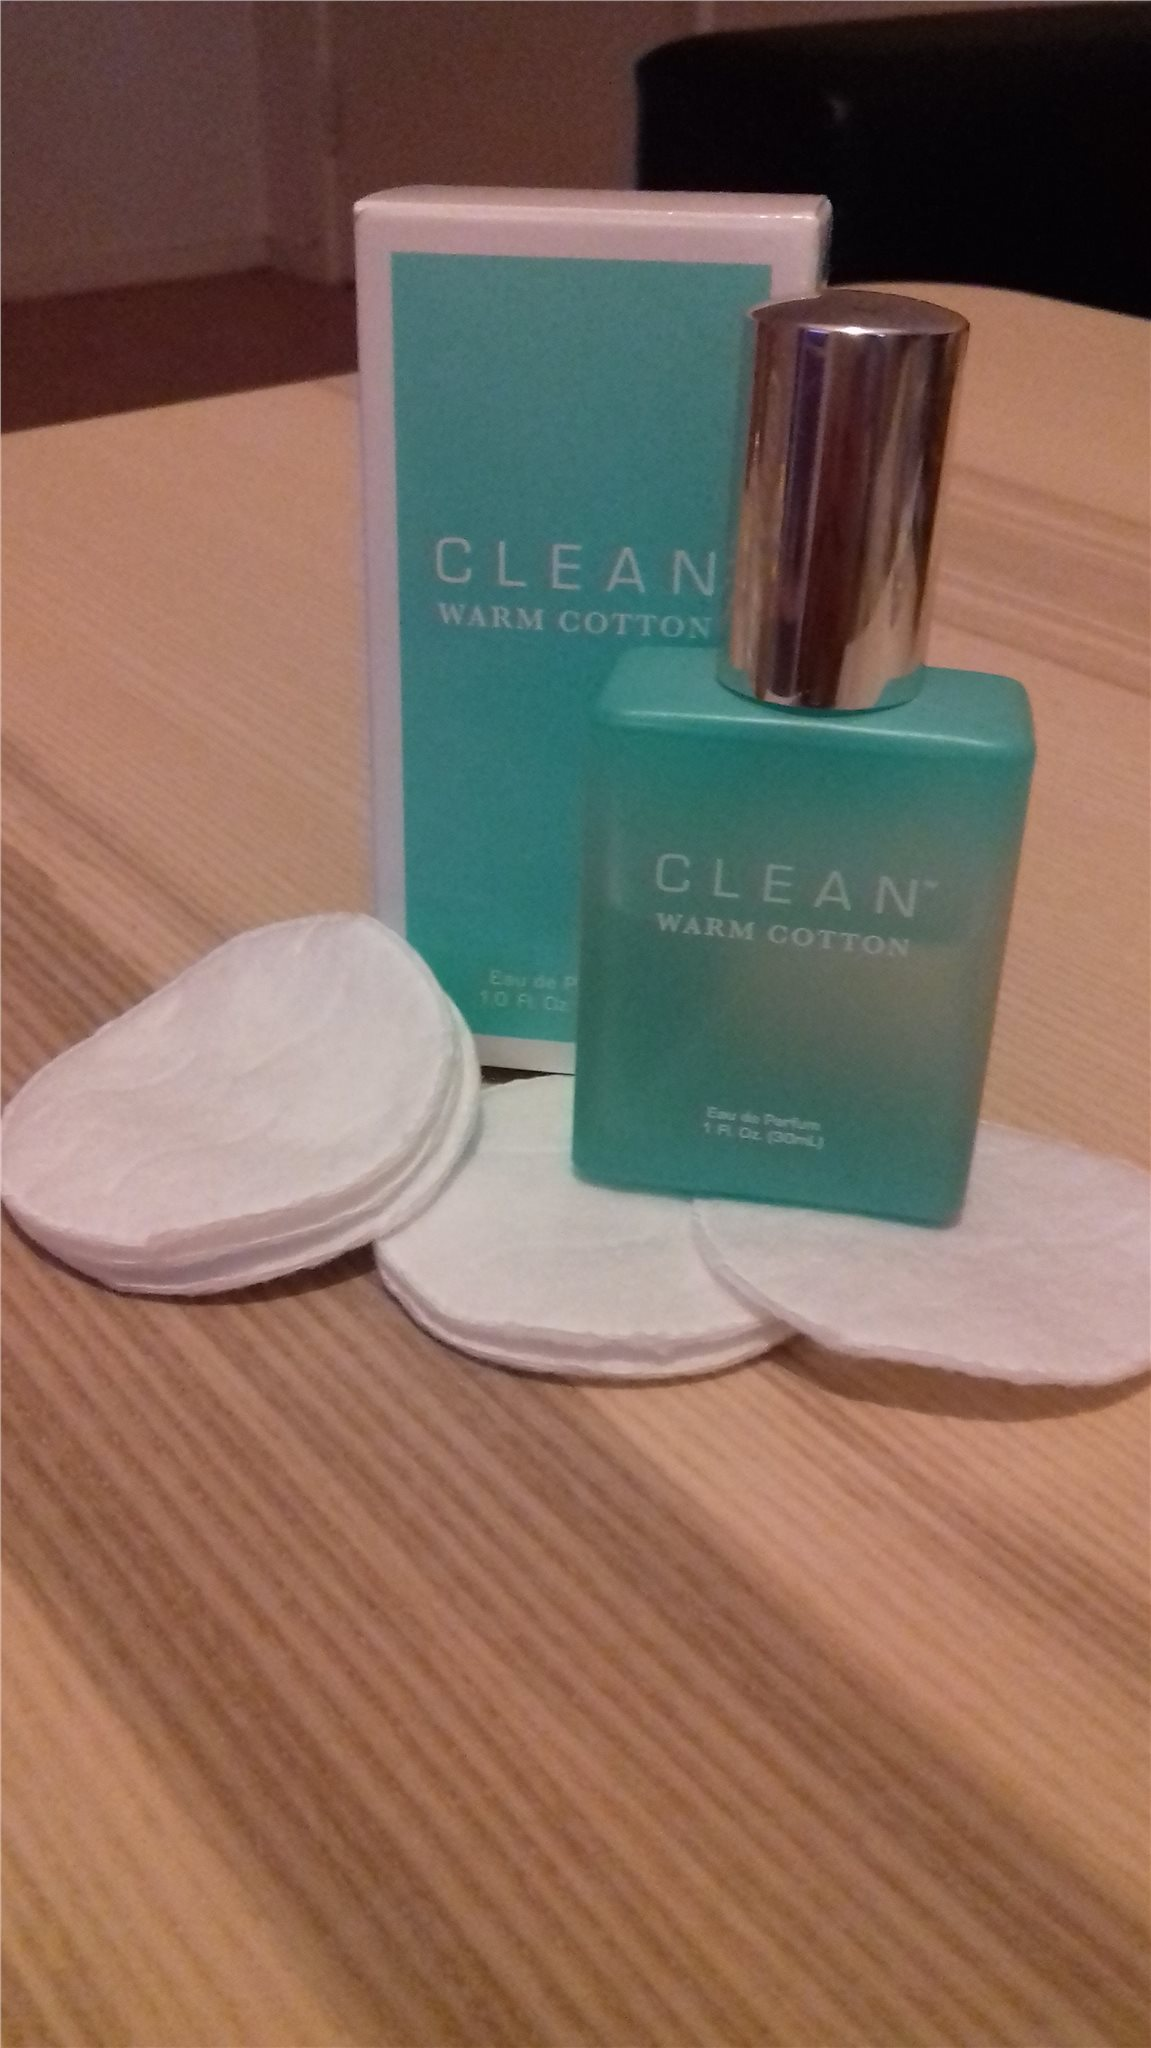 CLEAN warm cotton 30ml edp